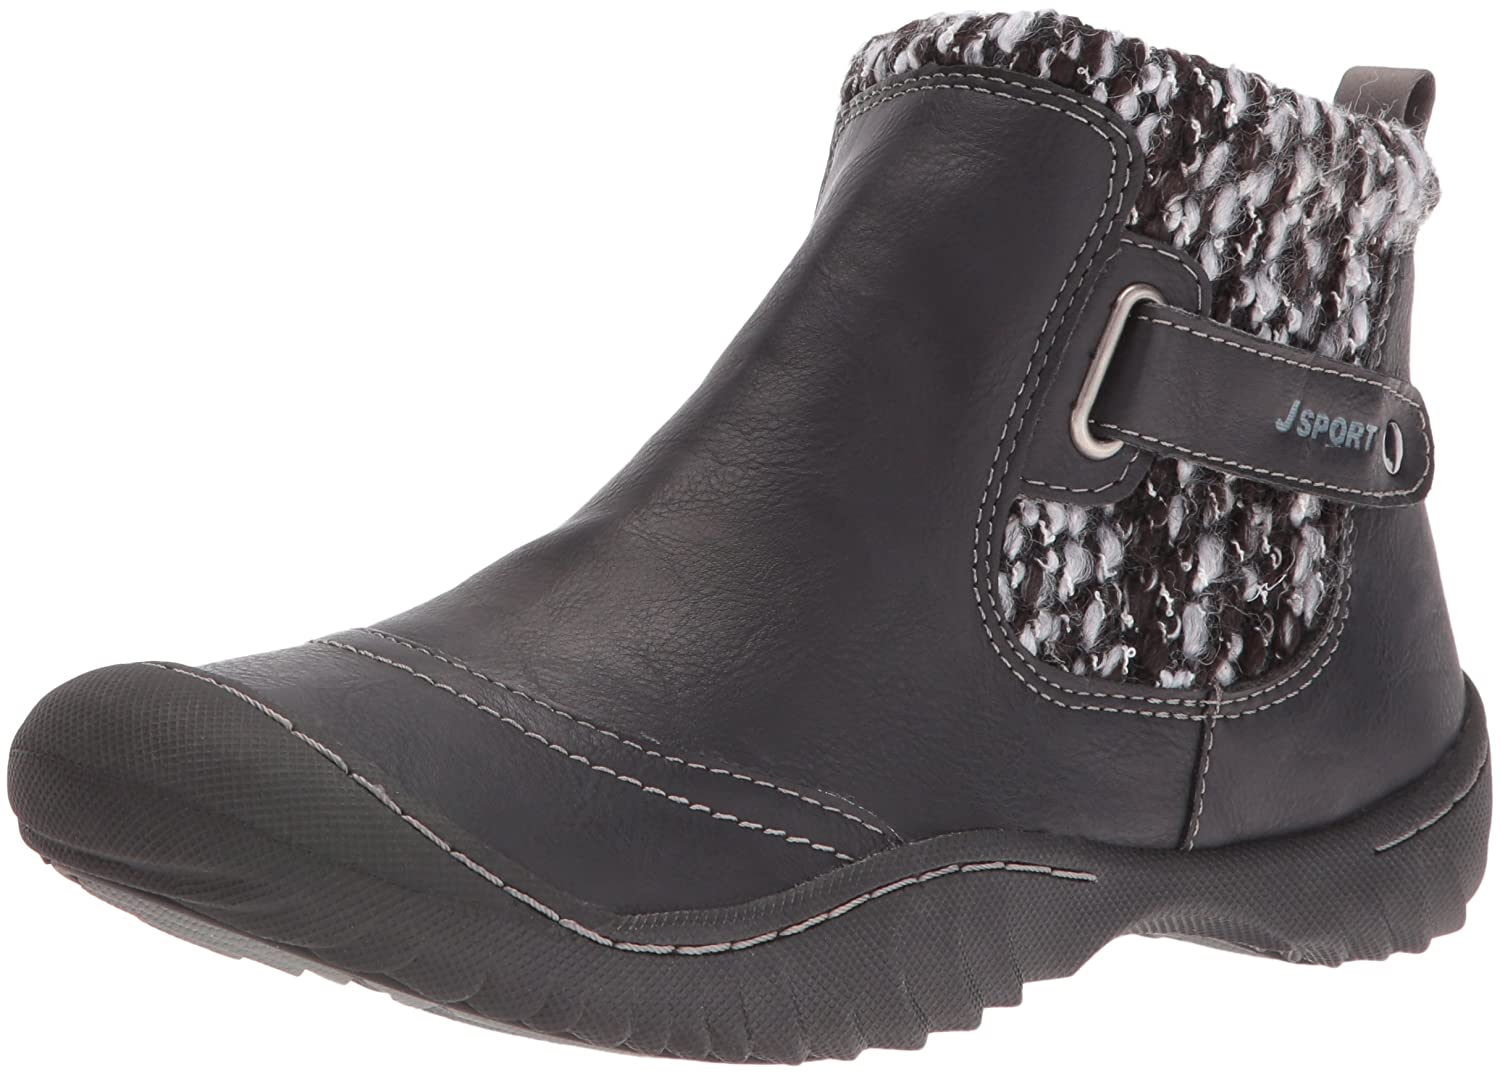 JSport by Jambu Women's Darcie Boot